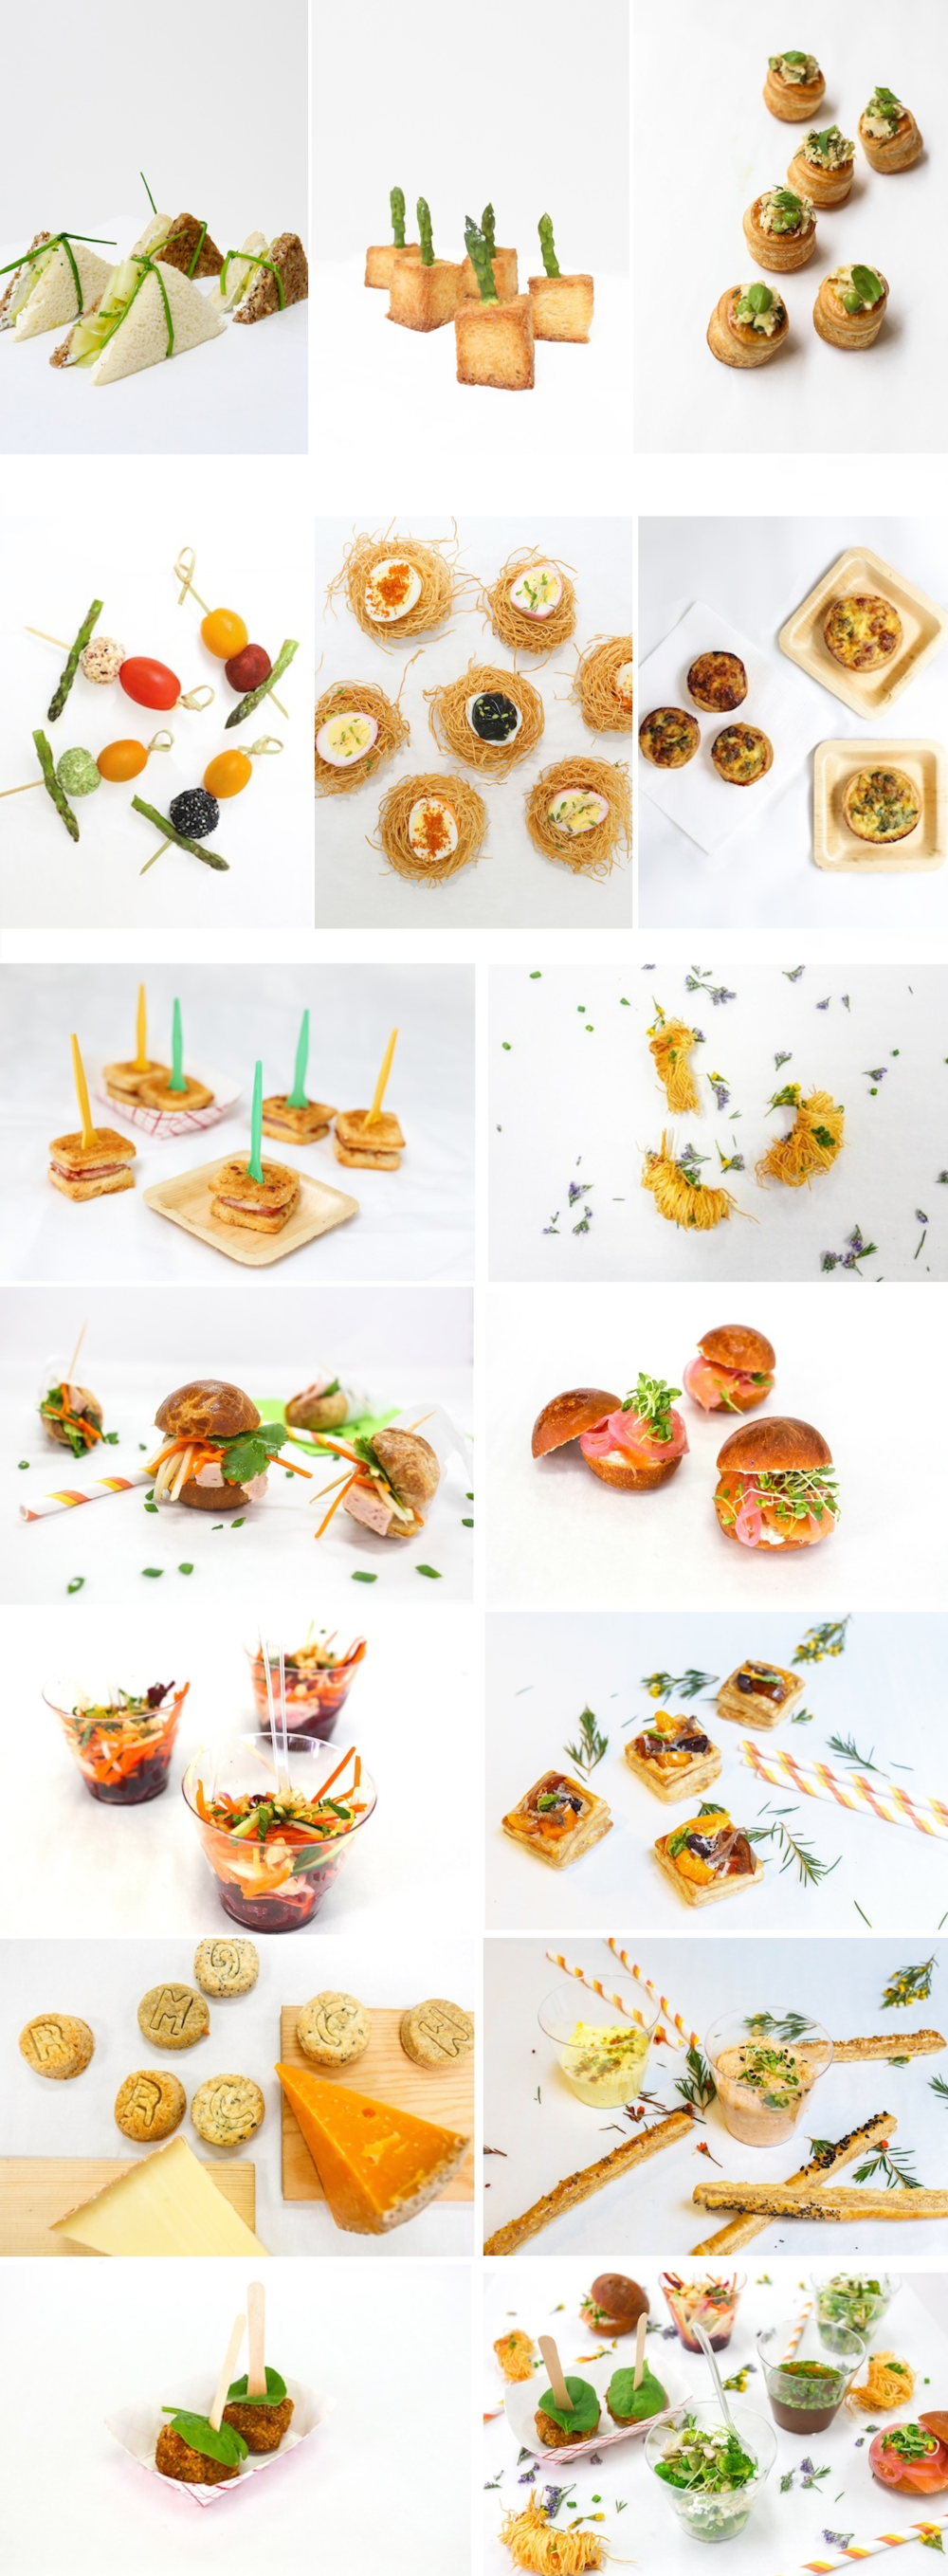 Selection of our canapés and hors-d'oeuvres